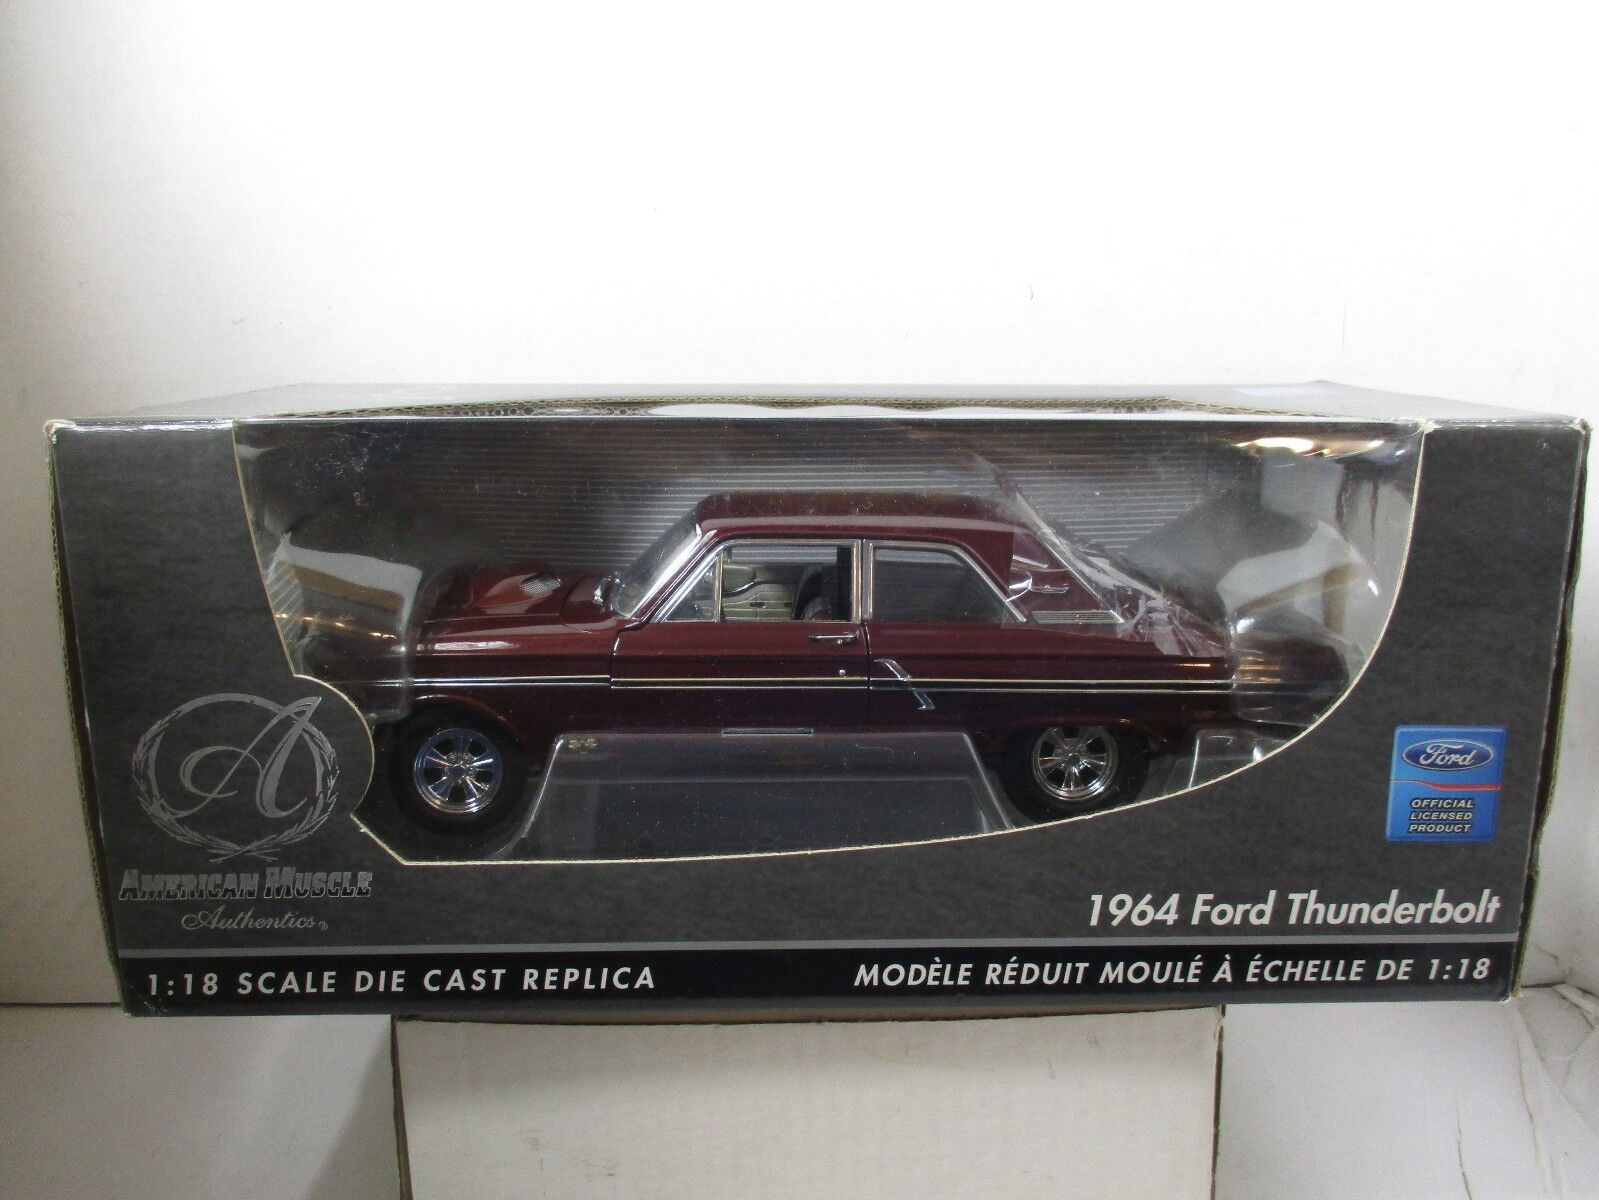 1/18 ERTL American Muscle Authentics 1964 Ford Fairlane Thunderbolt Ford America Official Site on ford upfitters, ford f650 interior, ford ecosport usa, ford f-150 raptor 2014, ford forum, ford tumblr, ford ranger brasil, ford mustang concept car, ford country, ford usa website, ford ecosport mars red, ford mustang wallpaper, ford accessories, ford gt concept,